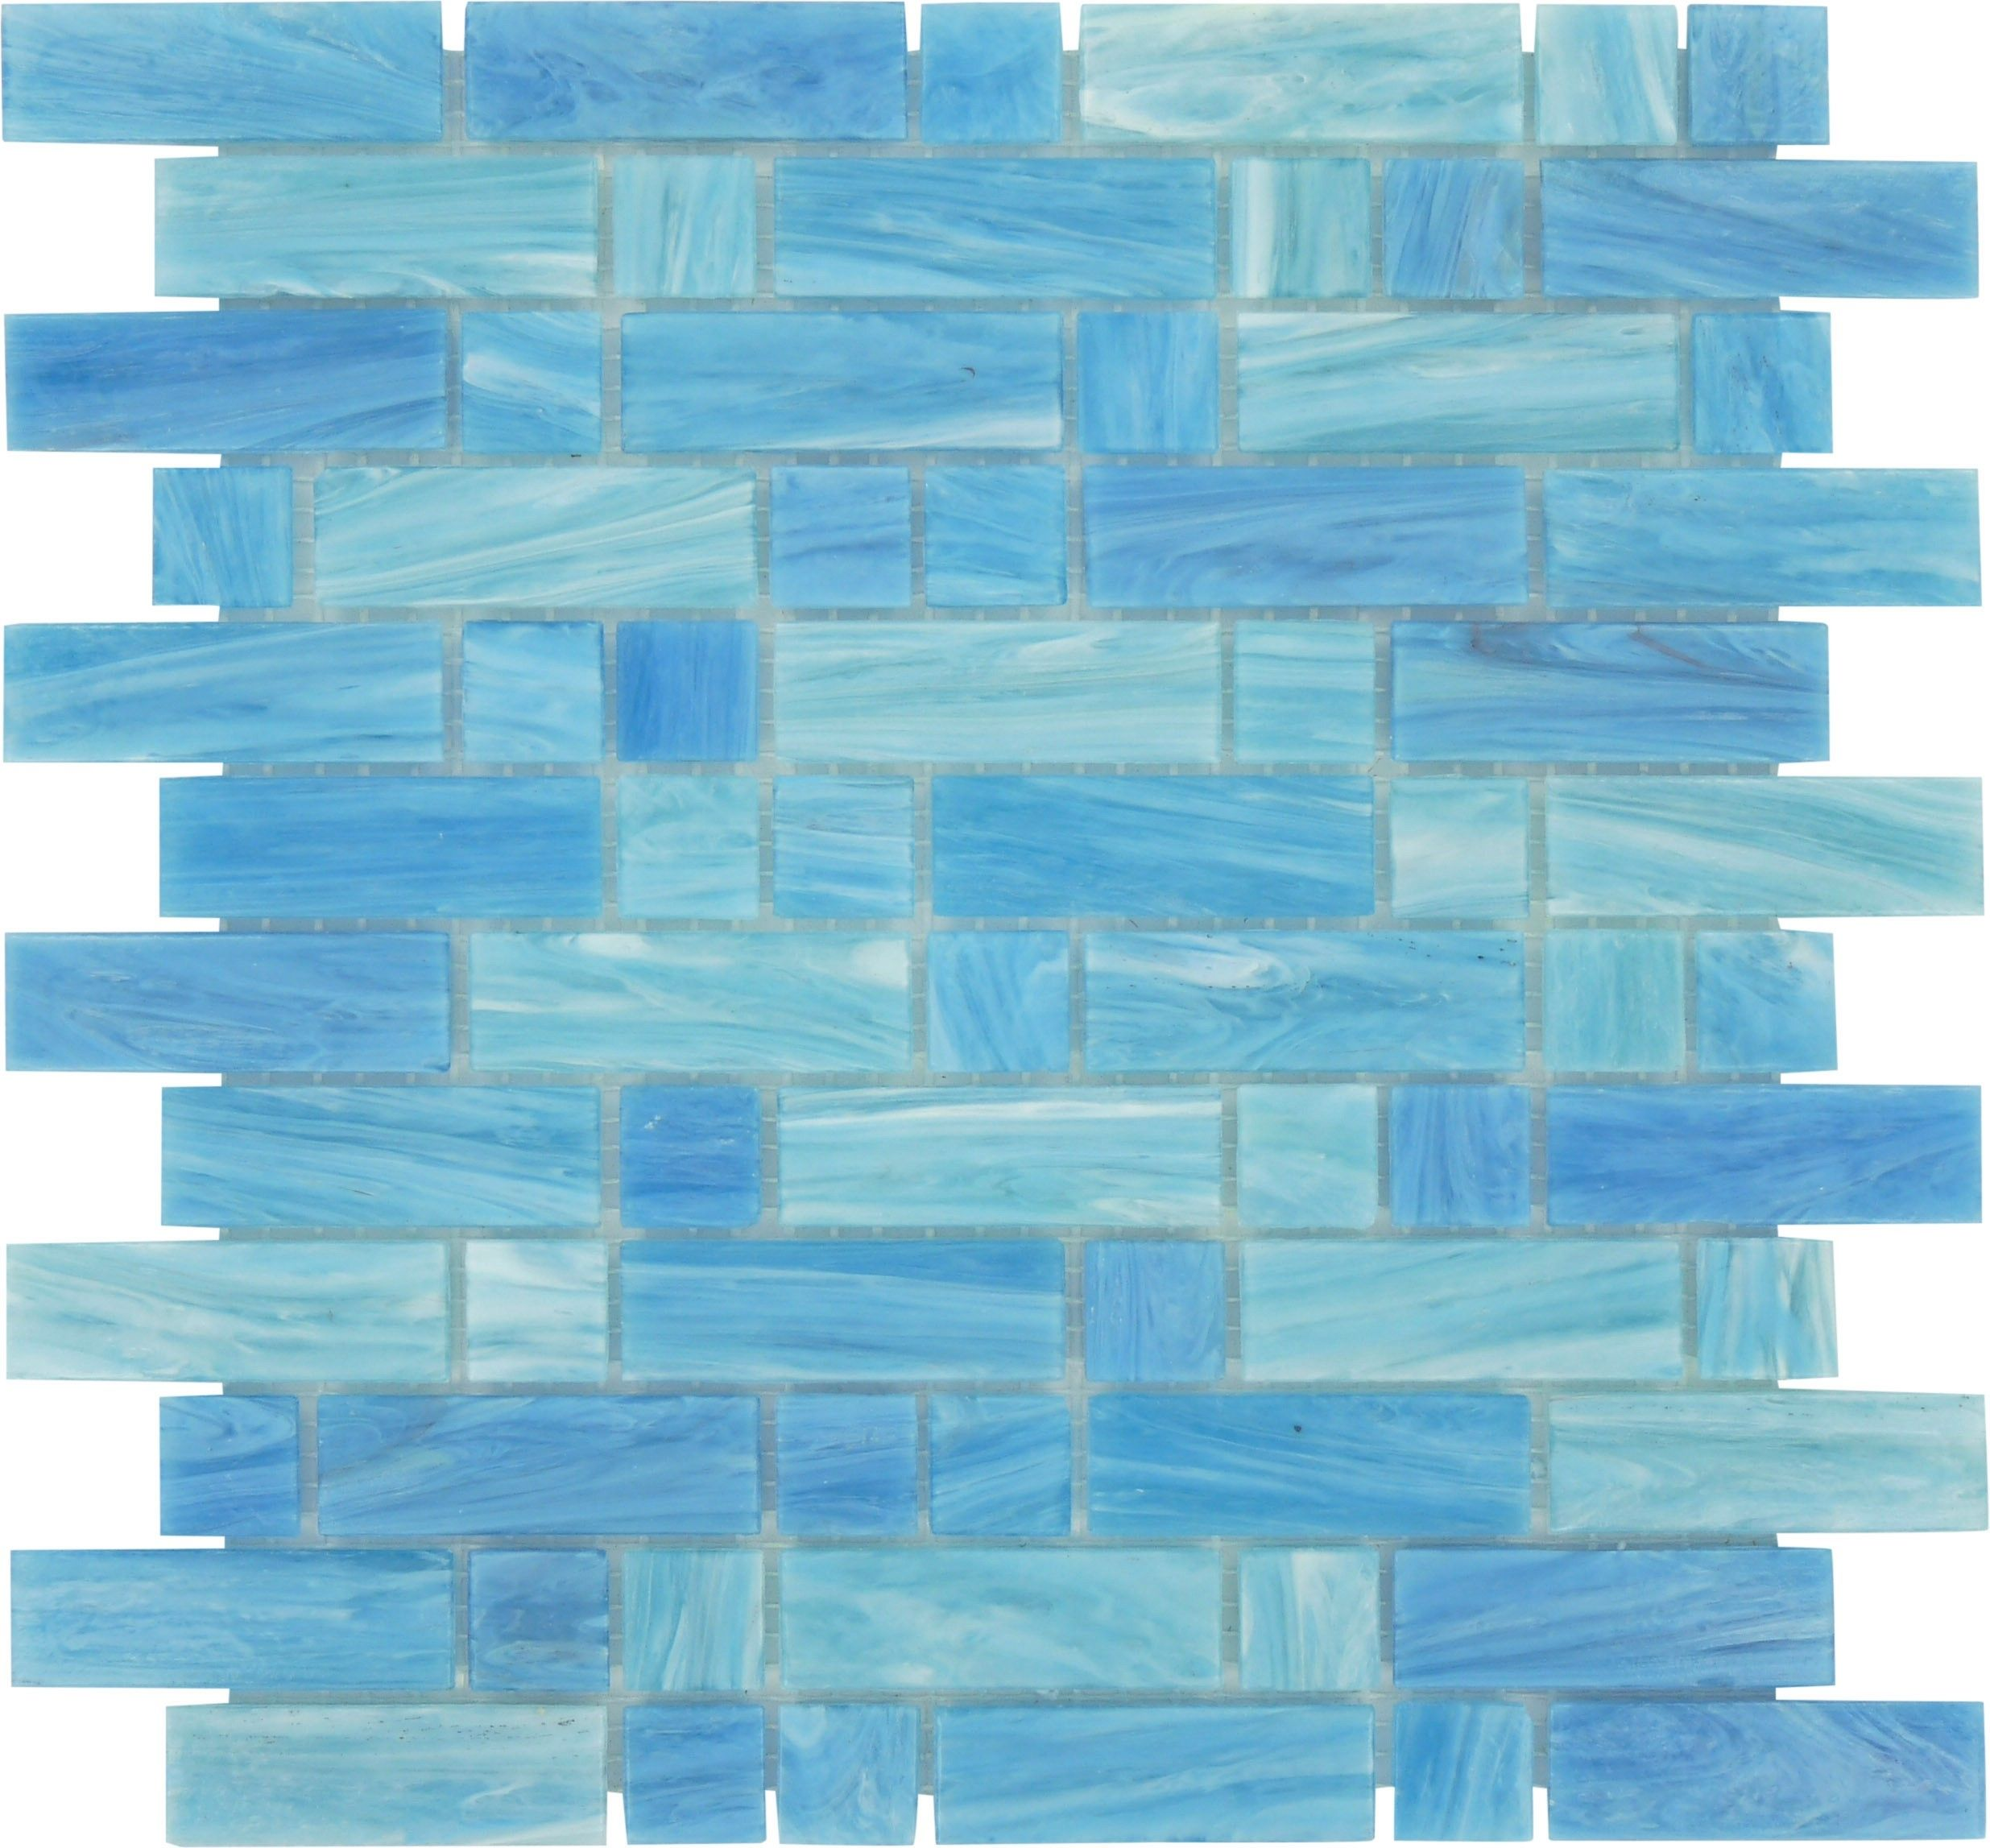 Sheet Size 11 3 4 X 11 3 4 Tile Size 7 8 X 2 7 8 7 8 X 7 8 Tile Thickness 1 4 Nominal Grout Joints Stained Glass Tile Shower Tile Designs Diy Tile